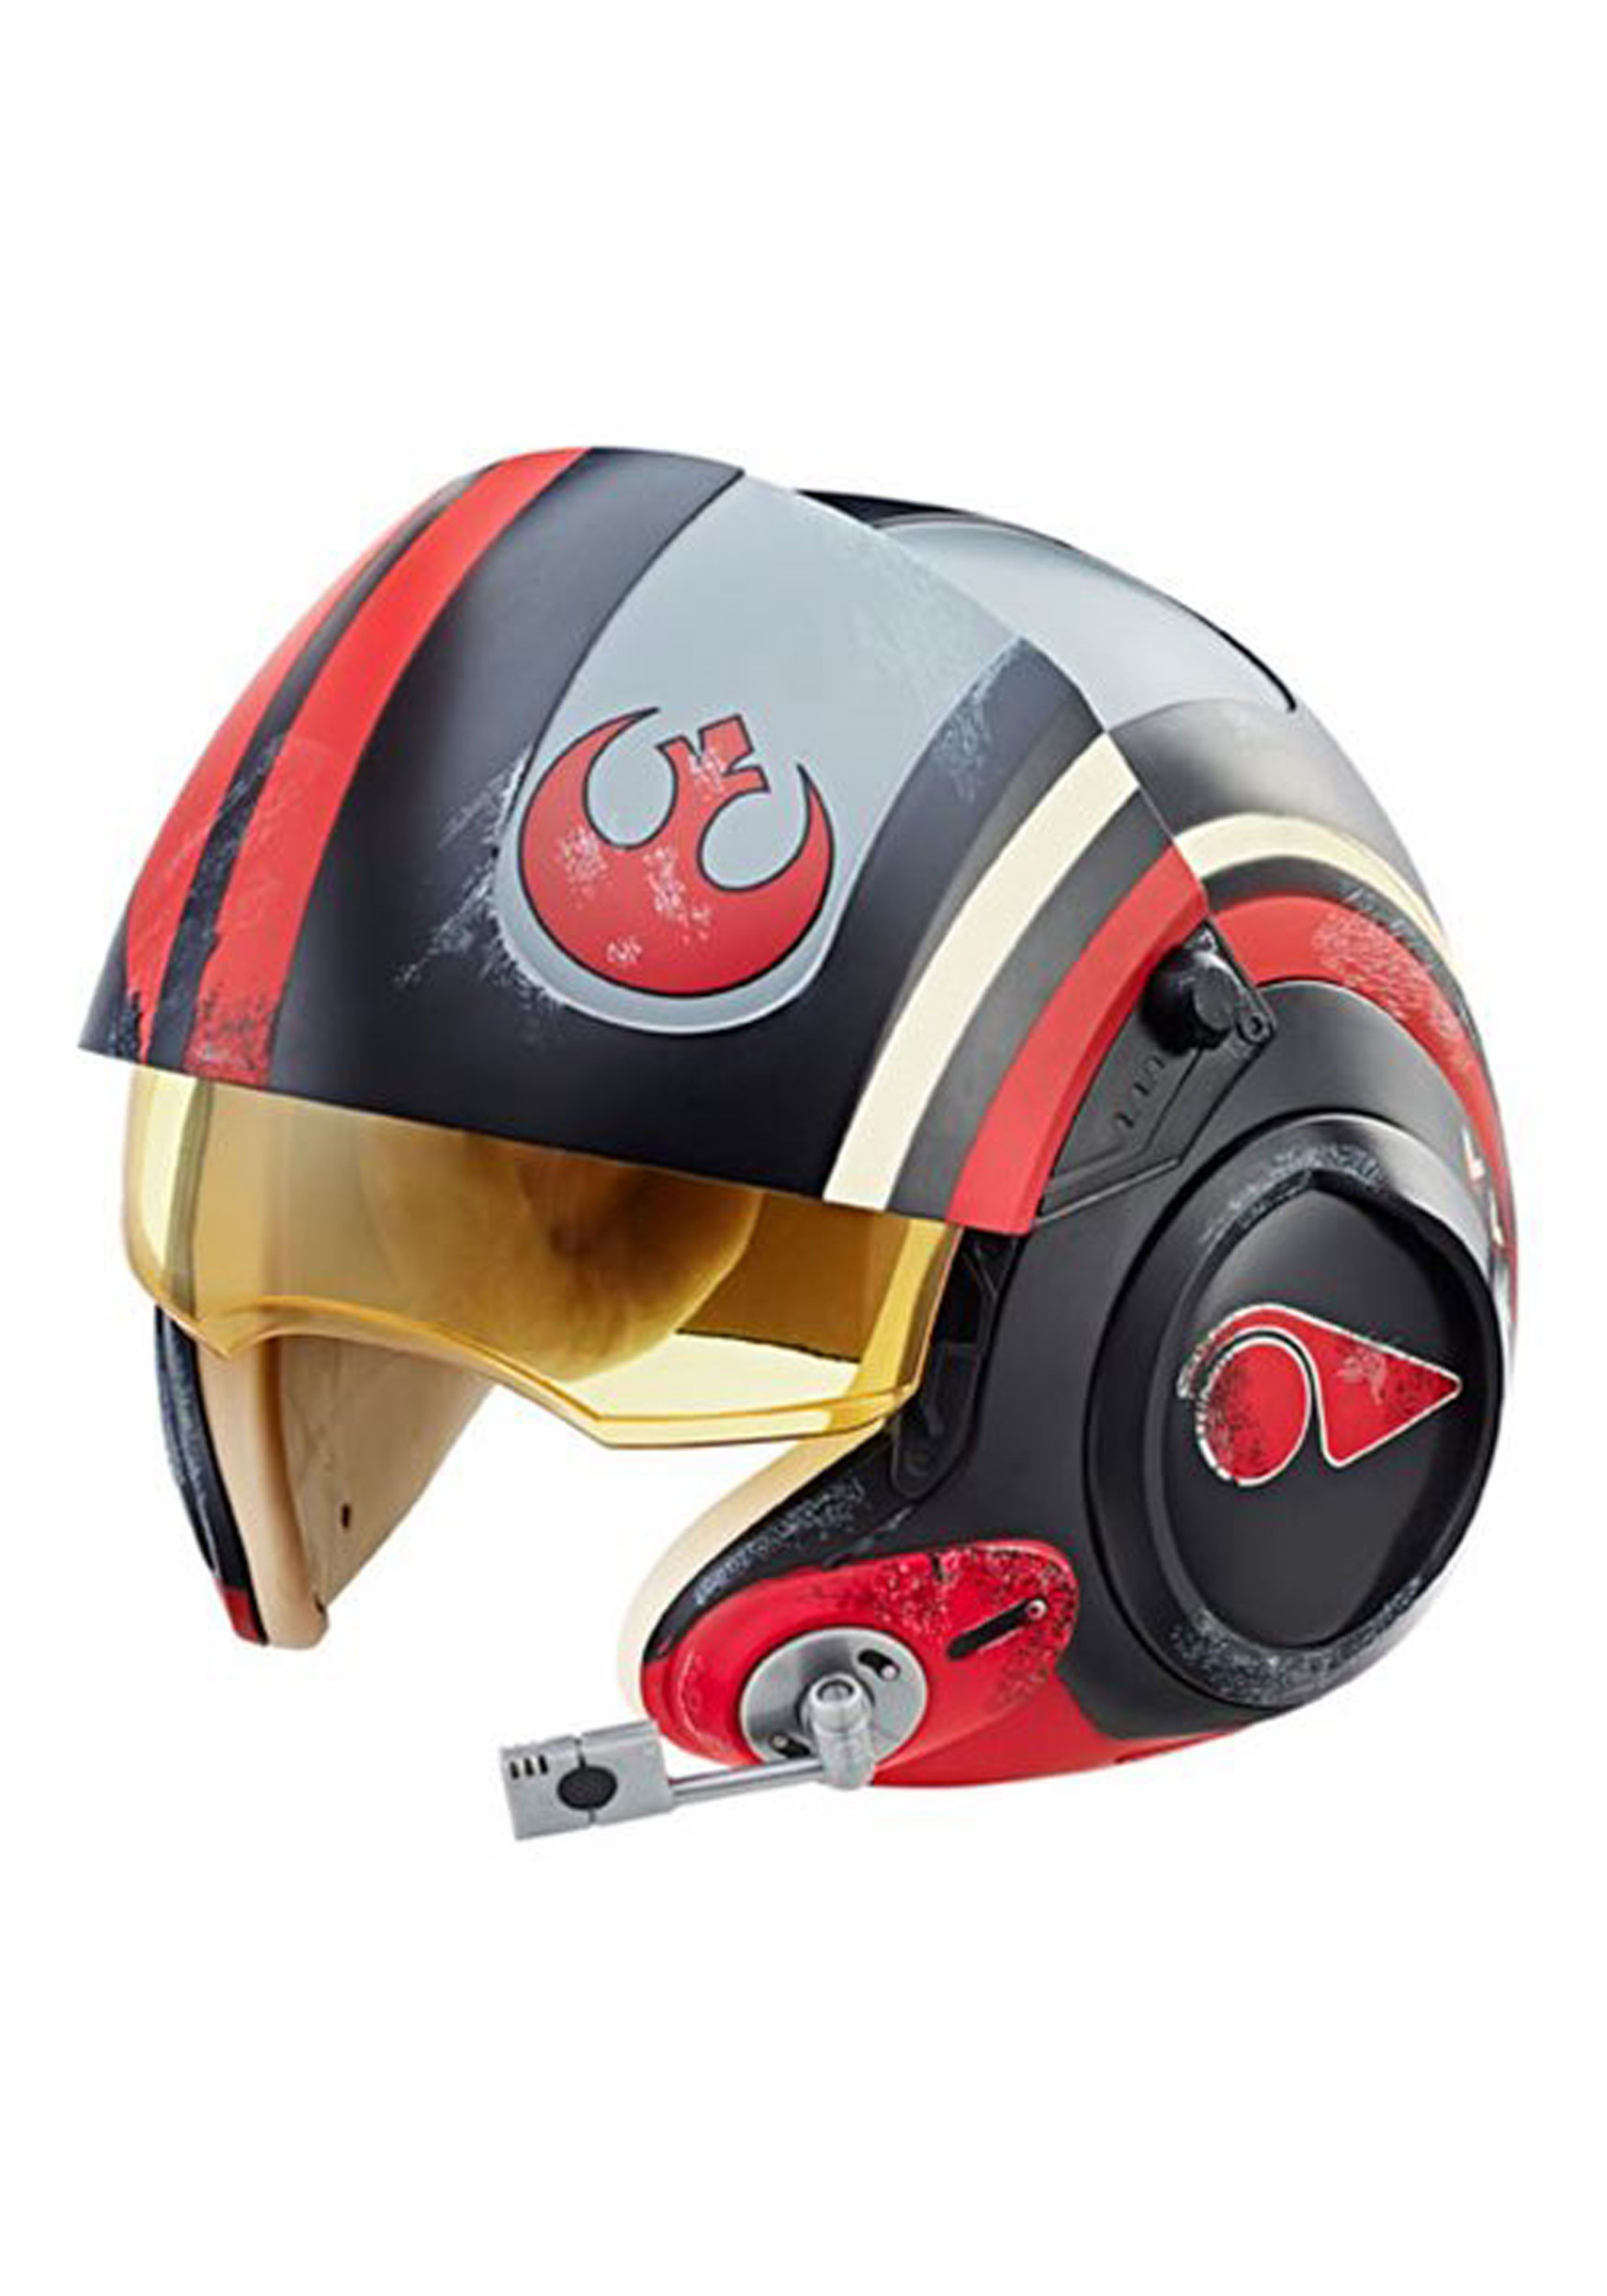 INOpets.com Anything for Pets Parents & Their Pets Star Wars The Black Series Poe Dameron Electronic Helmet